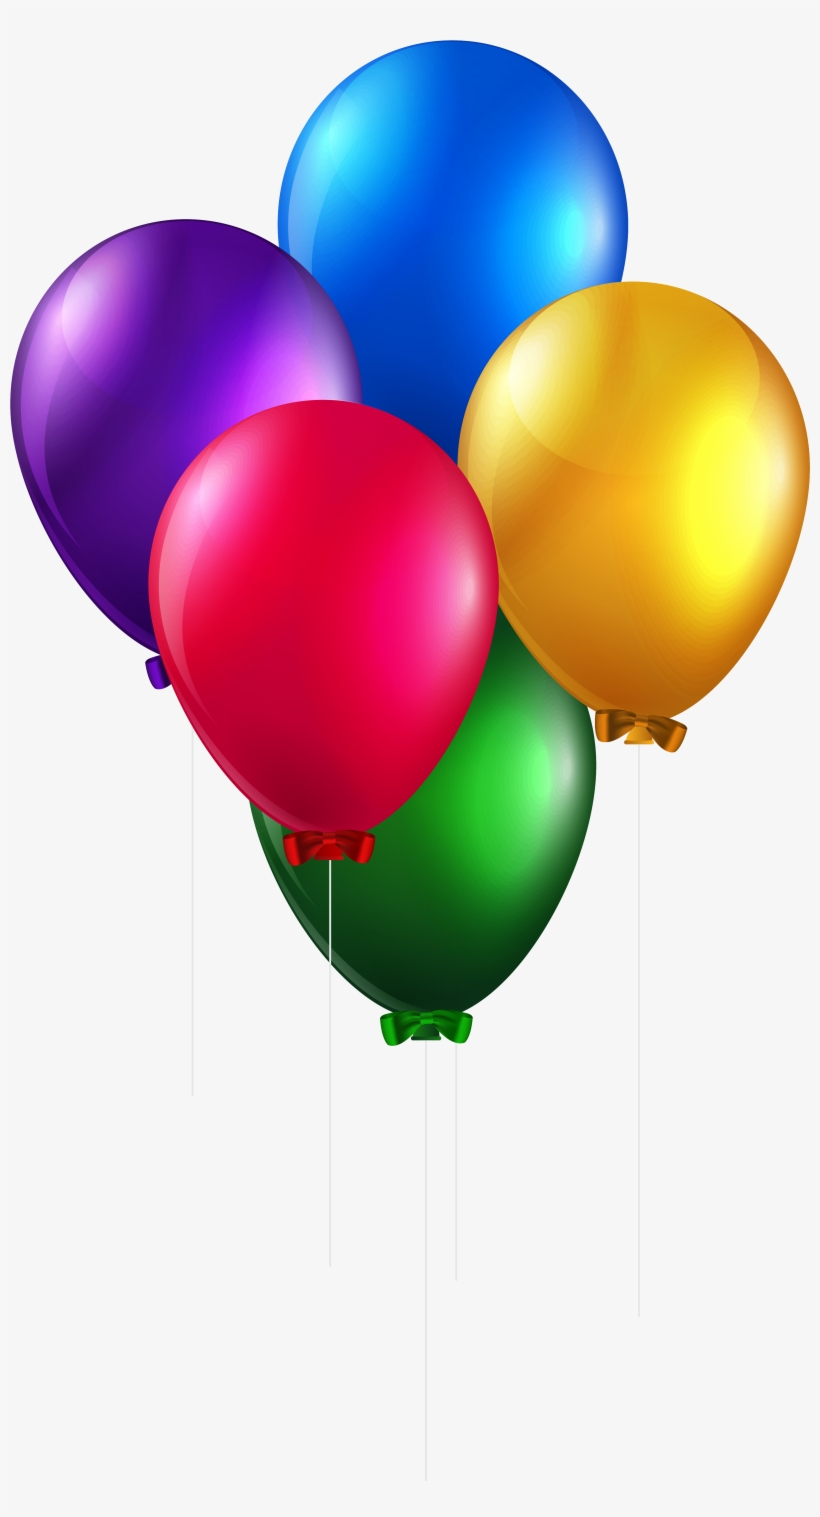 Balloons Png Clip Art Image Gallery Yopriceville.